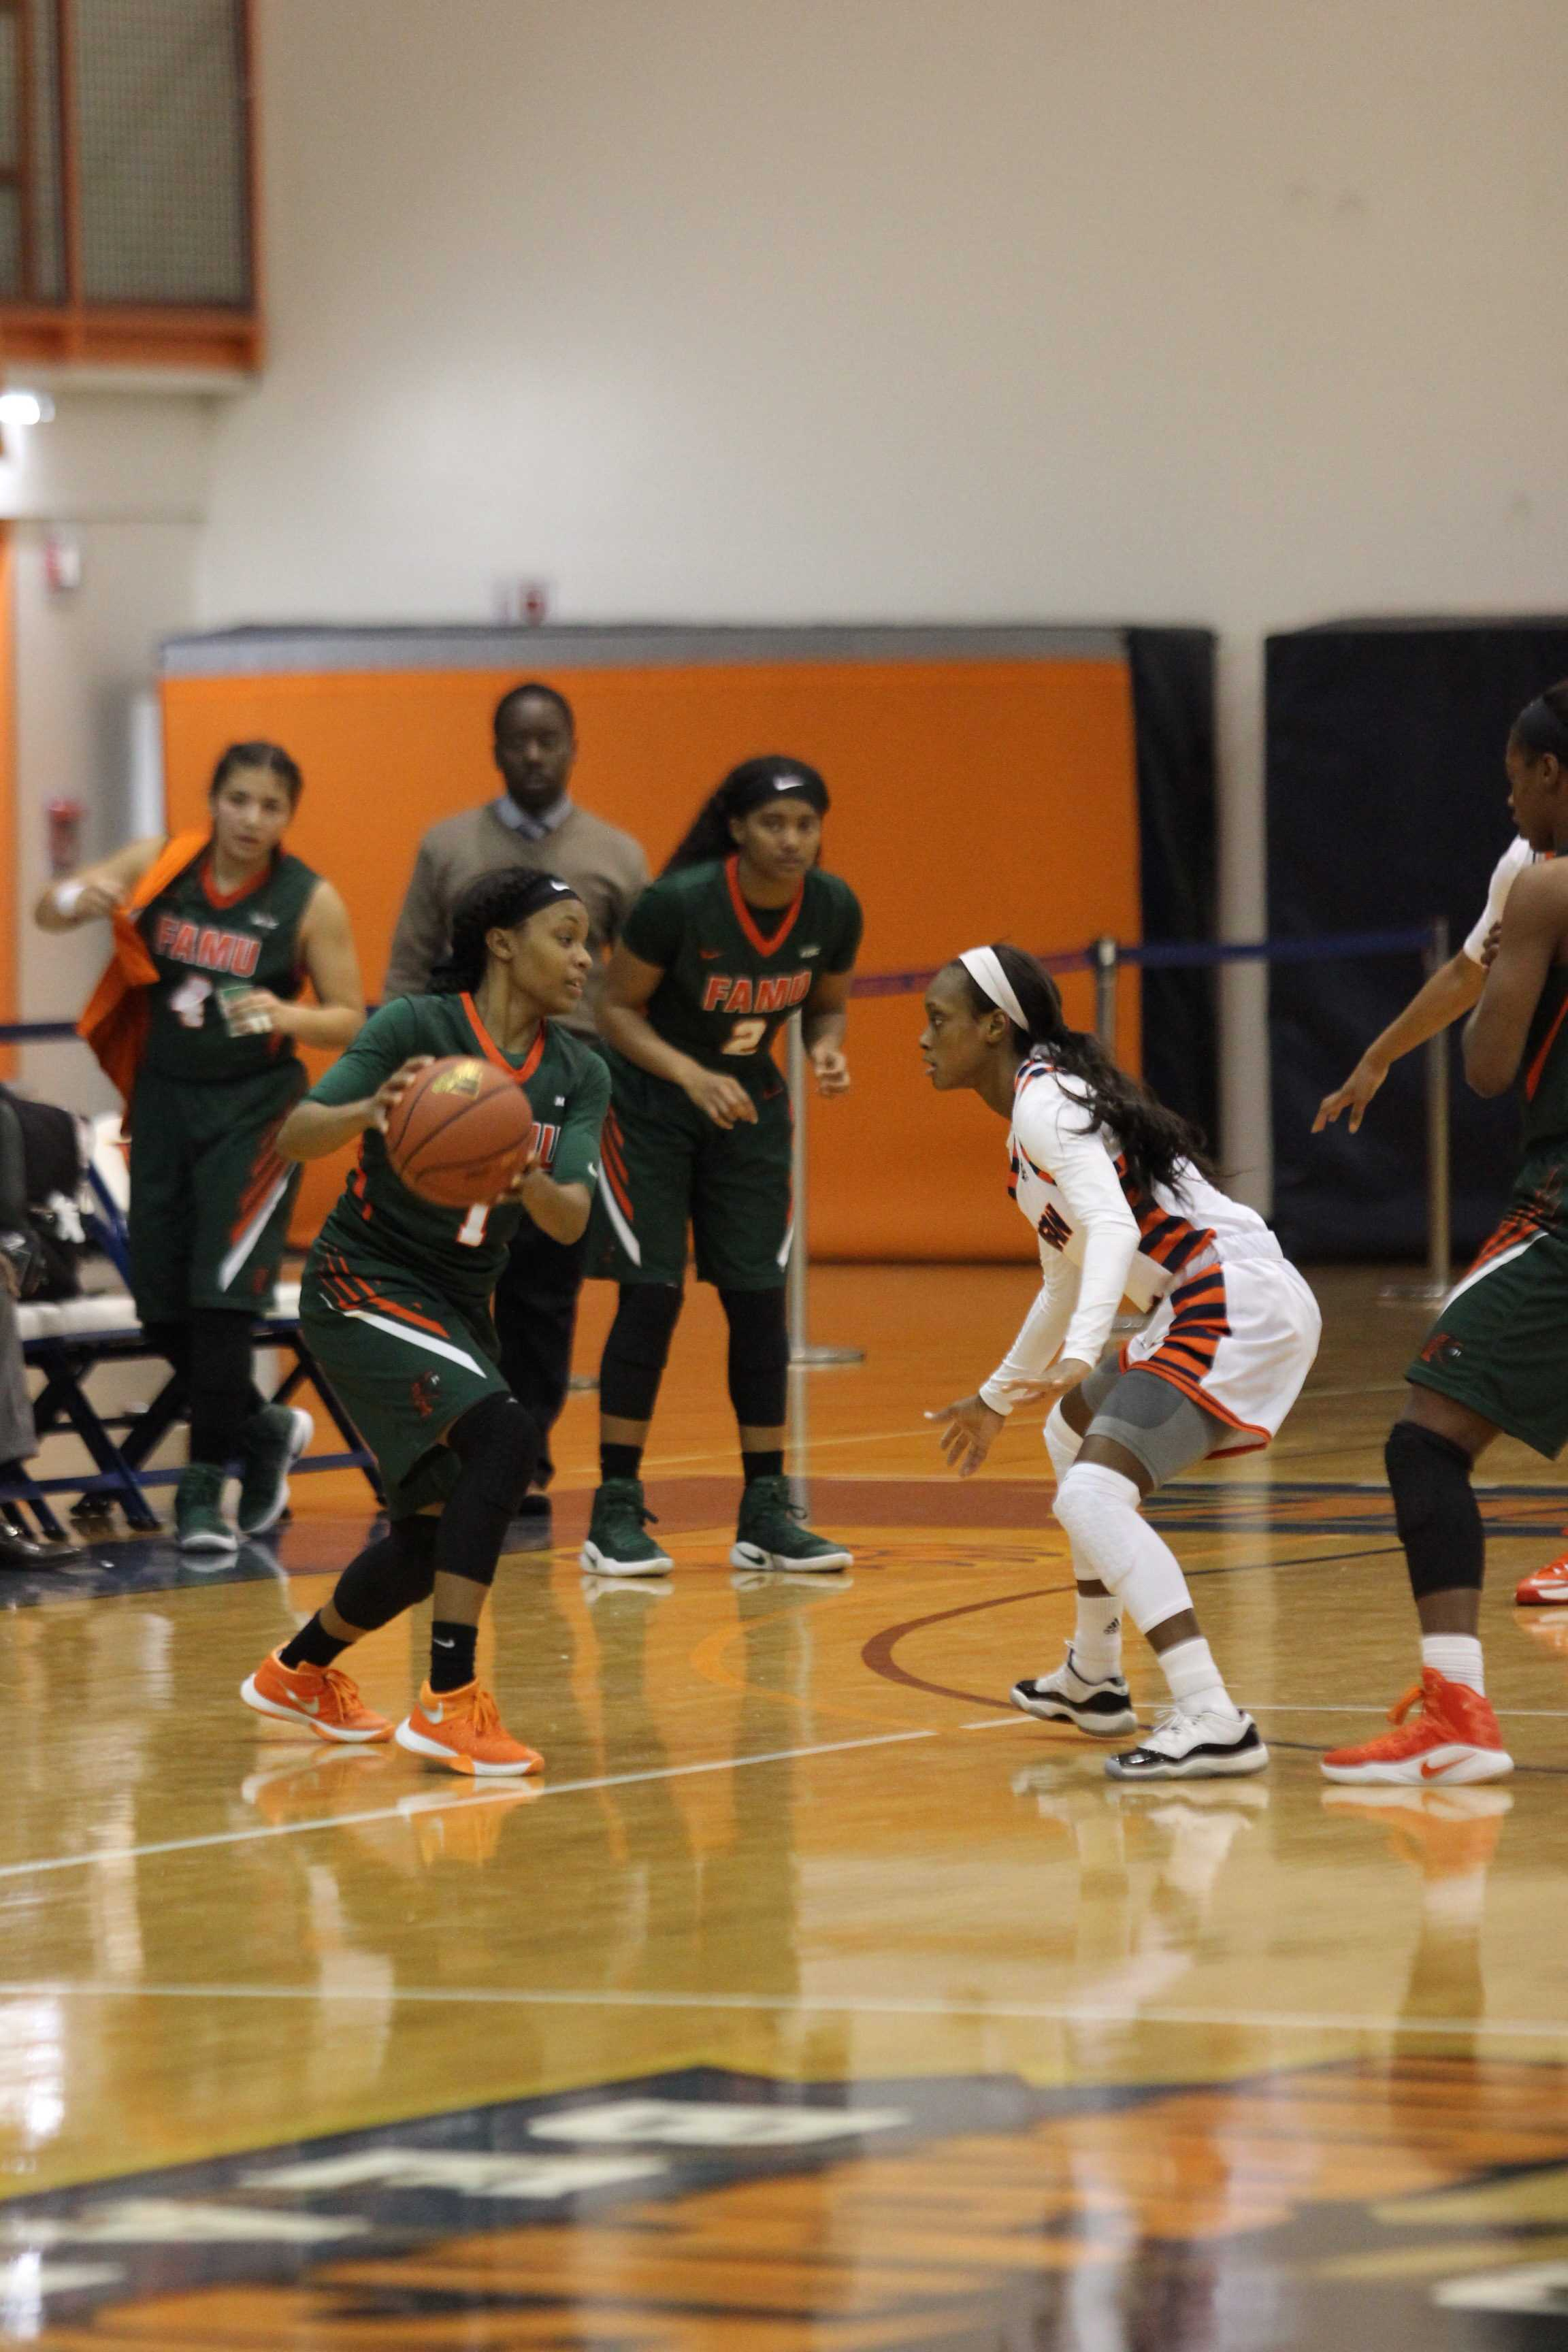 Farrar squaring up on defense in a game earlier this season against Florida A&M University.